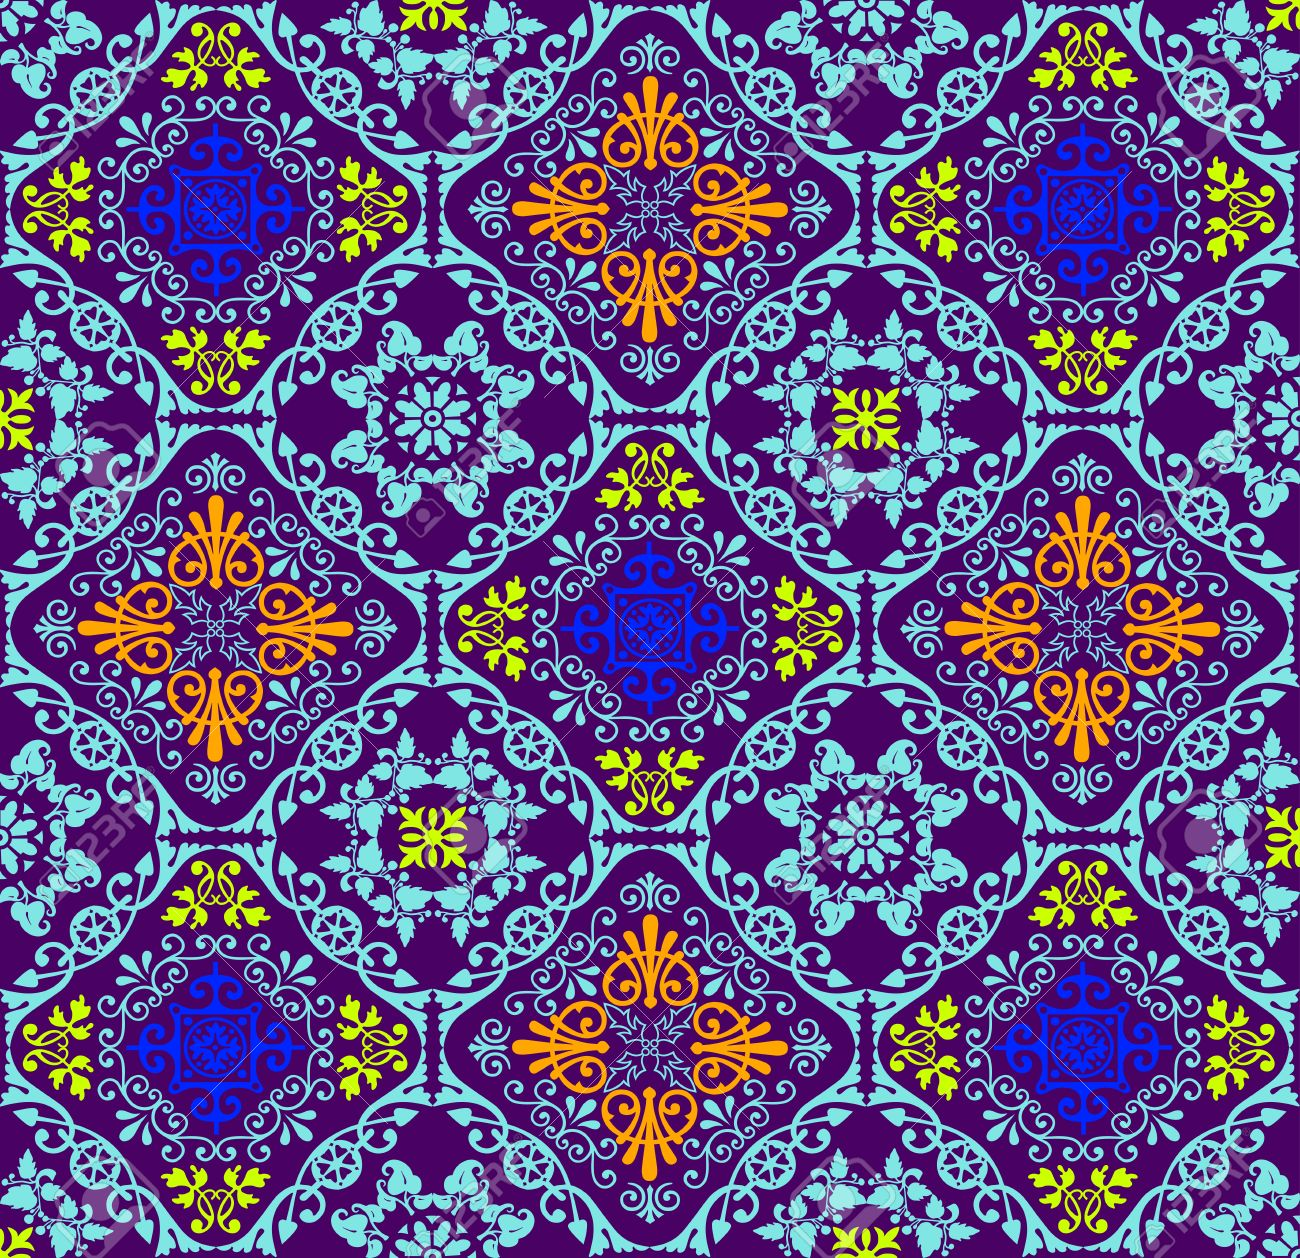 Fluorescent seamless tapestry - 40918547